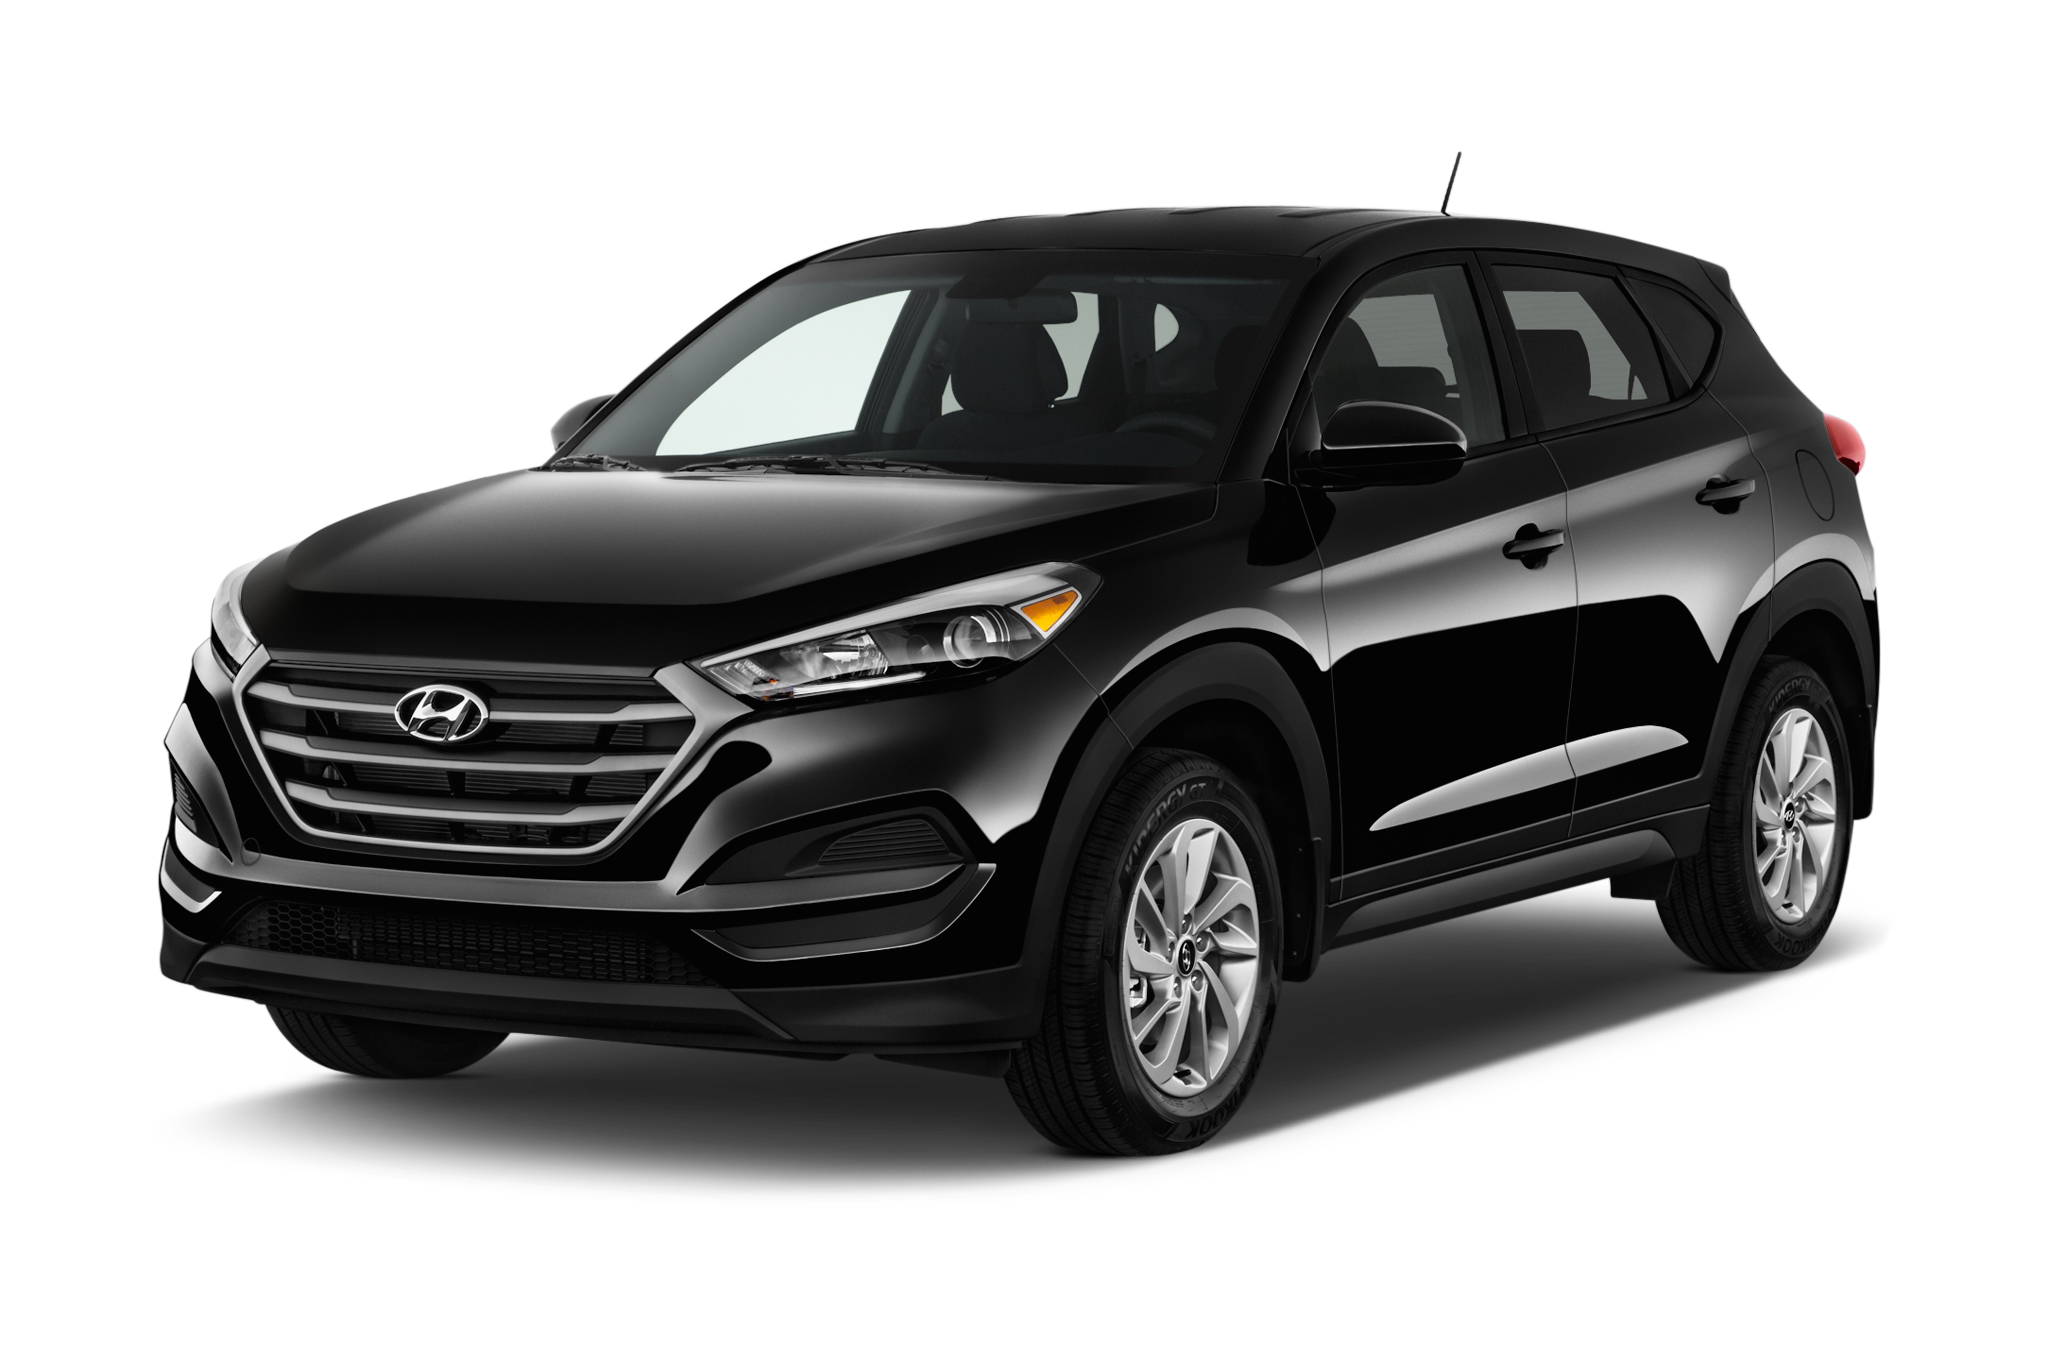 2017 hyundai tucson se awd dct specs and features msn autos. Black Bedroom Furniture Sets. Home Design Ideas